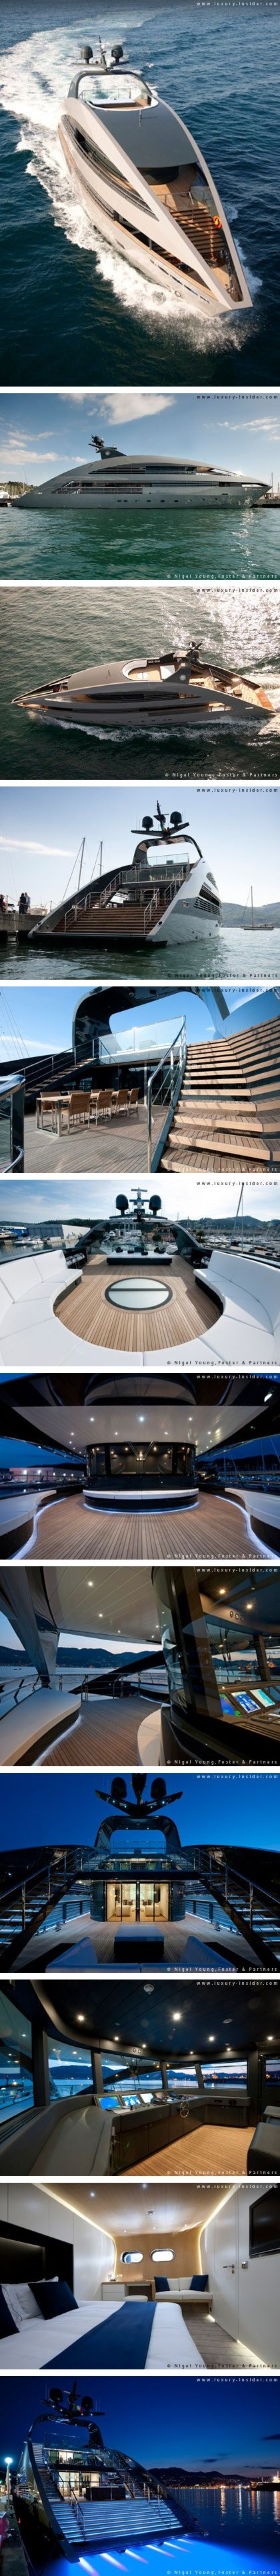 ♂ Life at the beach - Yachtplus has launched its first superyacht, the Ocean Emerald in La Spezia. Designed by Lord Norman Foster and his team f... From http://www.luxury-insider.com/luxury-news/2009/05/a-slice-of-life-on-the-high-seas